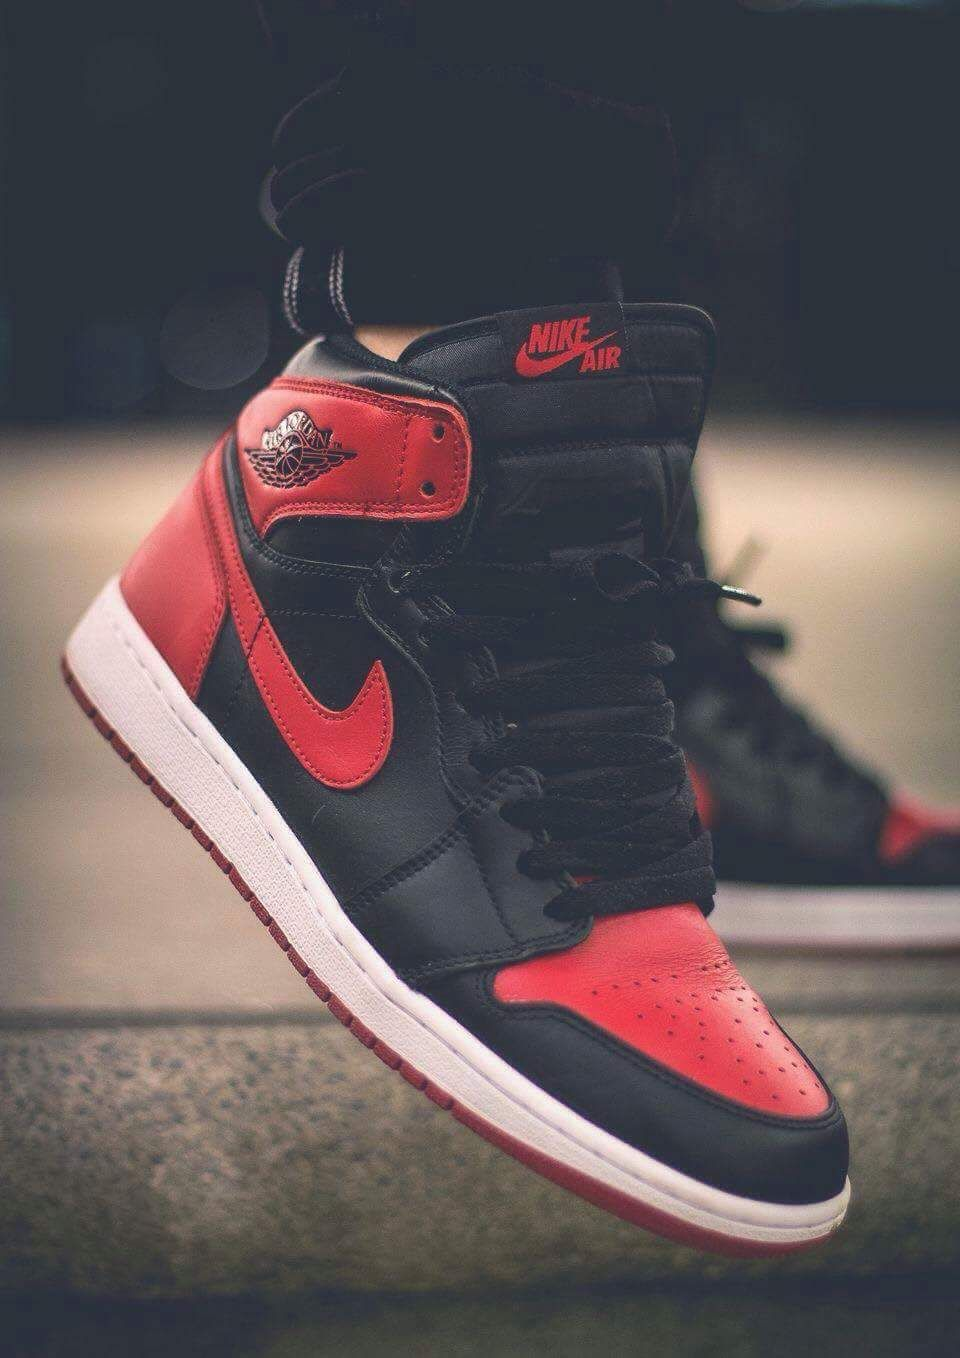 897685e89a 2014 cheap nike shoes for sale info collection off big discount.New nike  roshe run,lebron james shoes,authentic jordans and nike foamposites 2014  online.